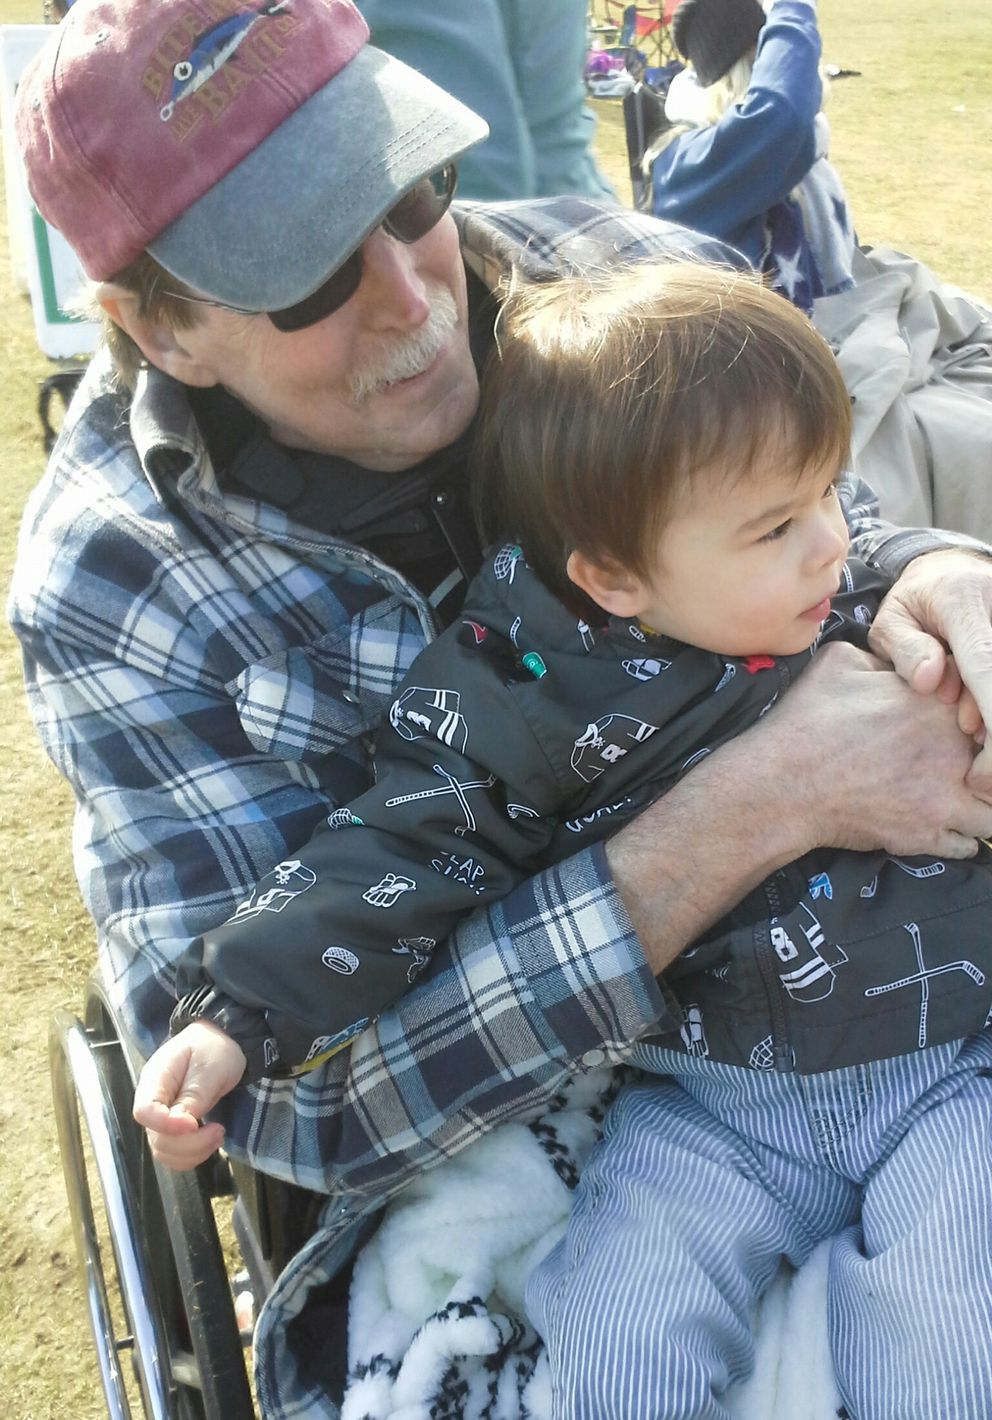 The Zuidmeer family used to meet regularly at Peace Arch Park. Bill Zuidmeer was diagnosed in December with terminal kidney cancer. Bill and his grandson (above) had a final visit together before Bill passed away 12 days later. (Peter Zuidmeer)